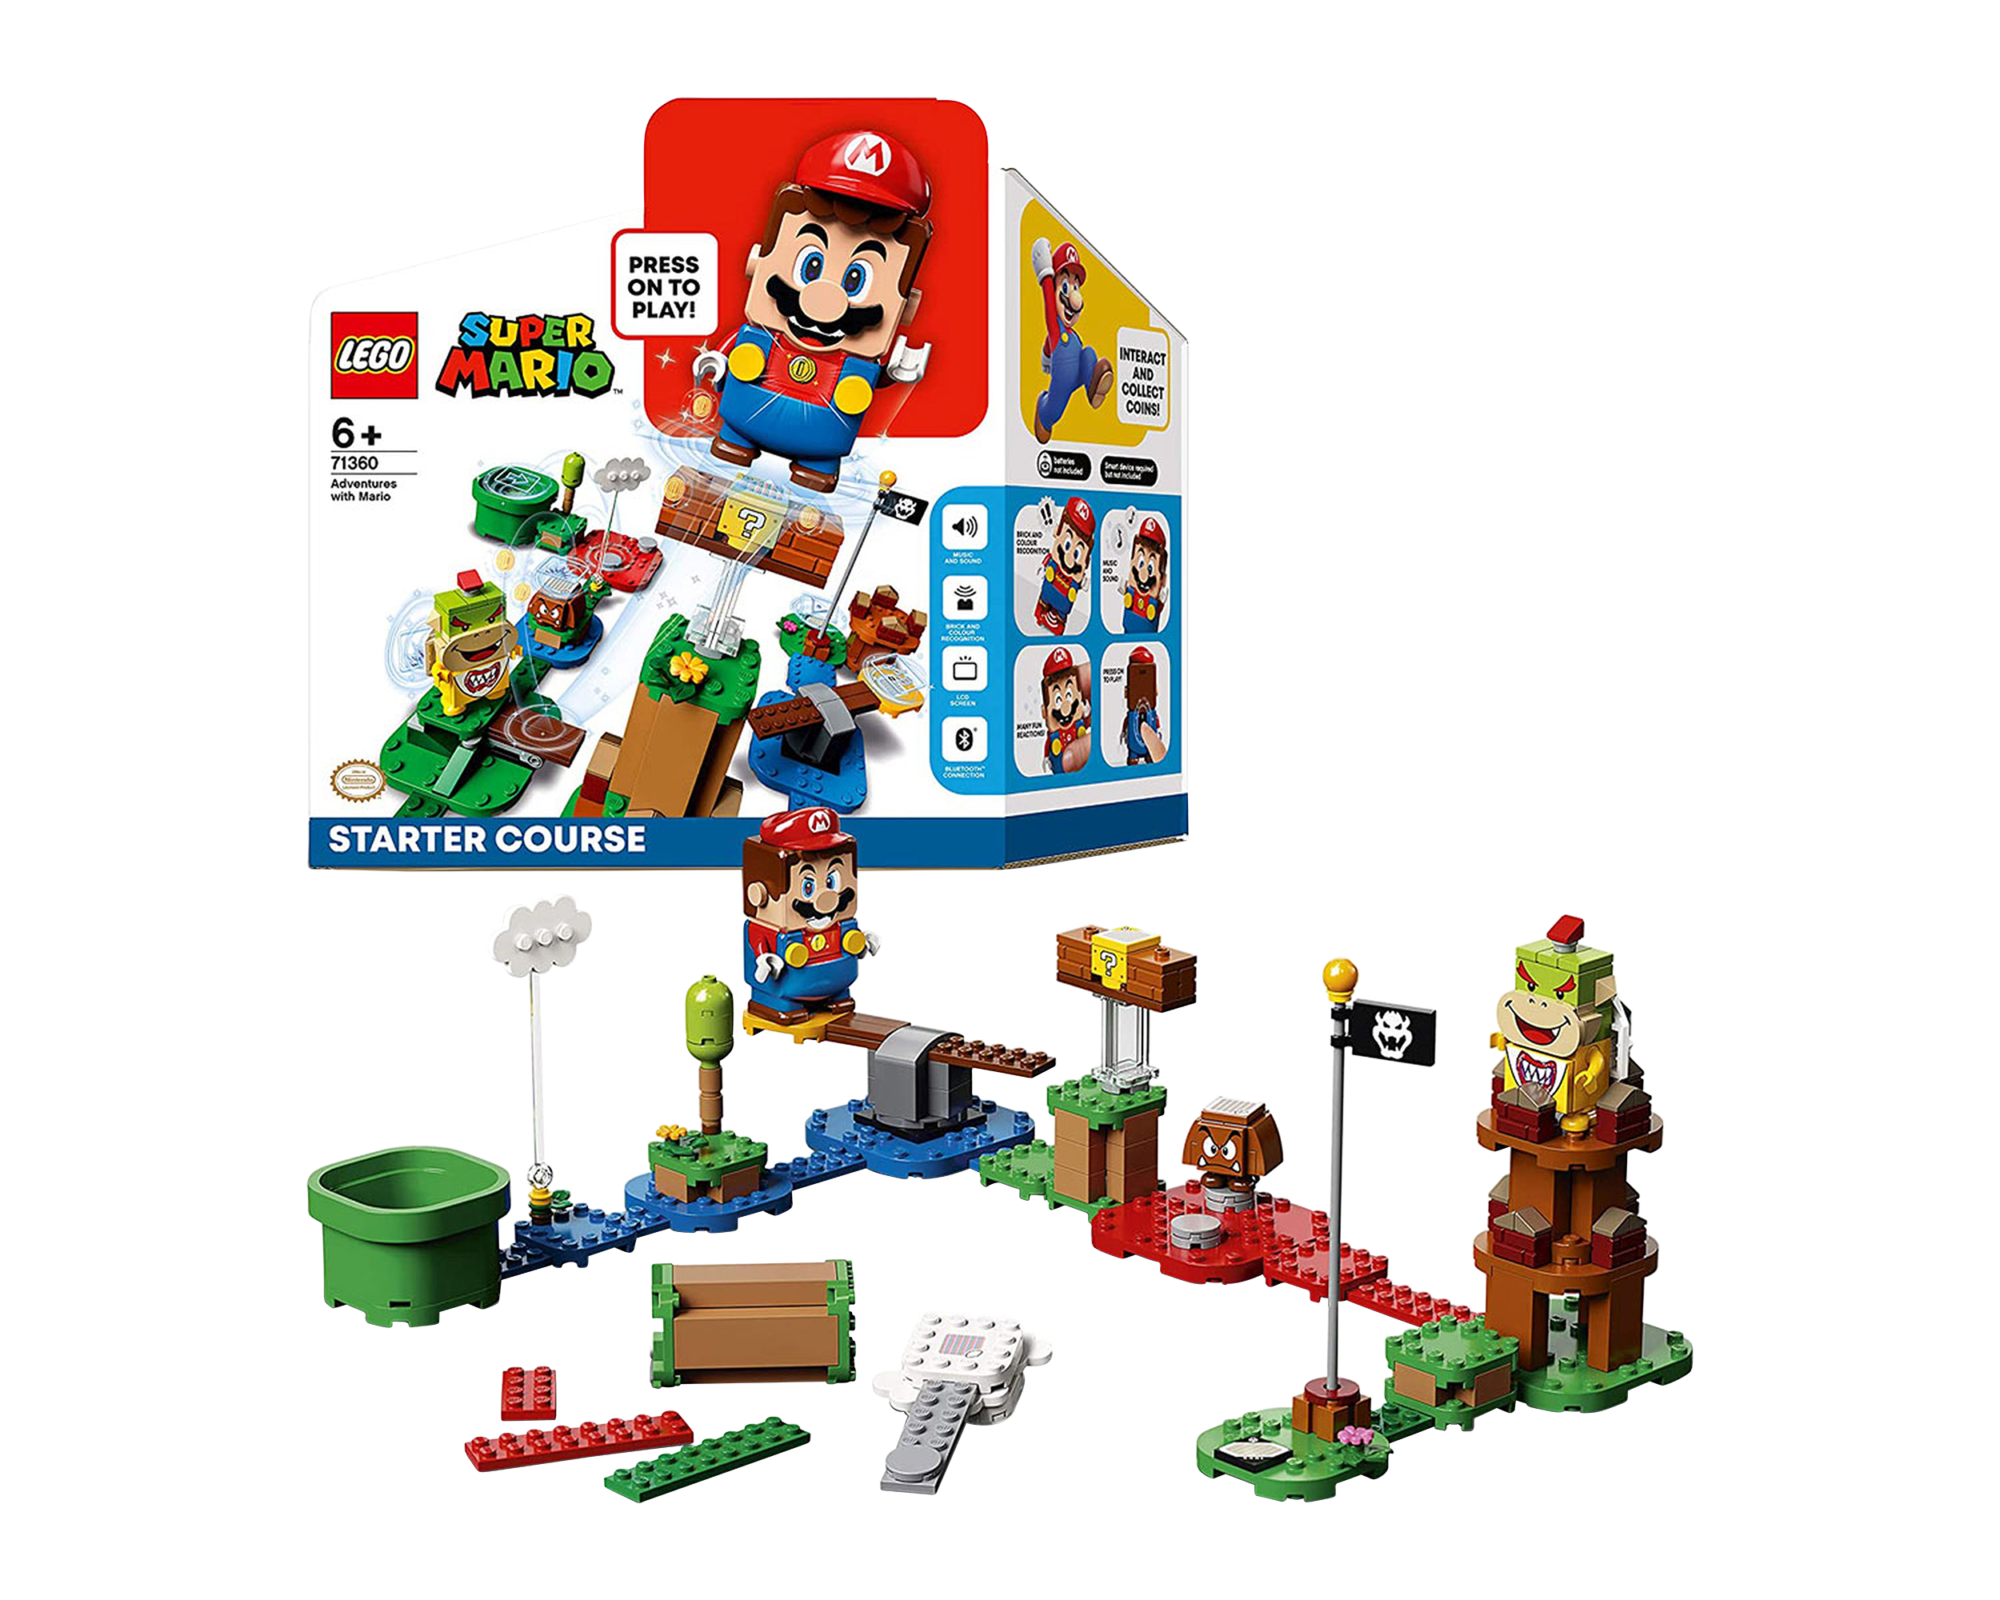 l-e-g-o-super-mario-adventures-starter-course-toy-interactive-figure-&-buildable-game,-currently-priced-at-£49.97.png